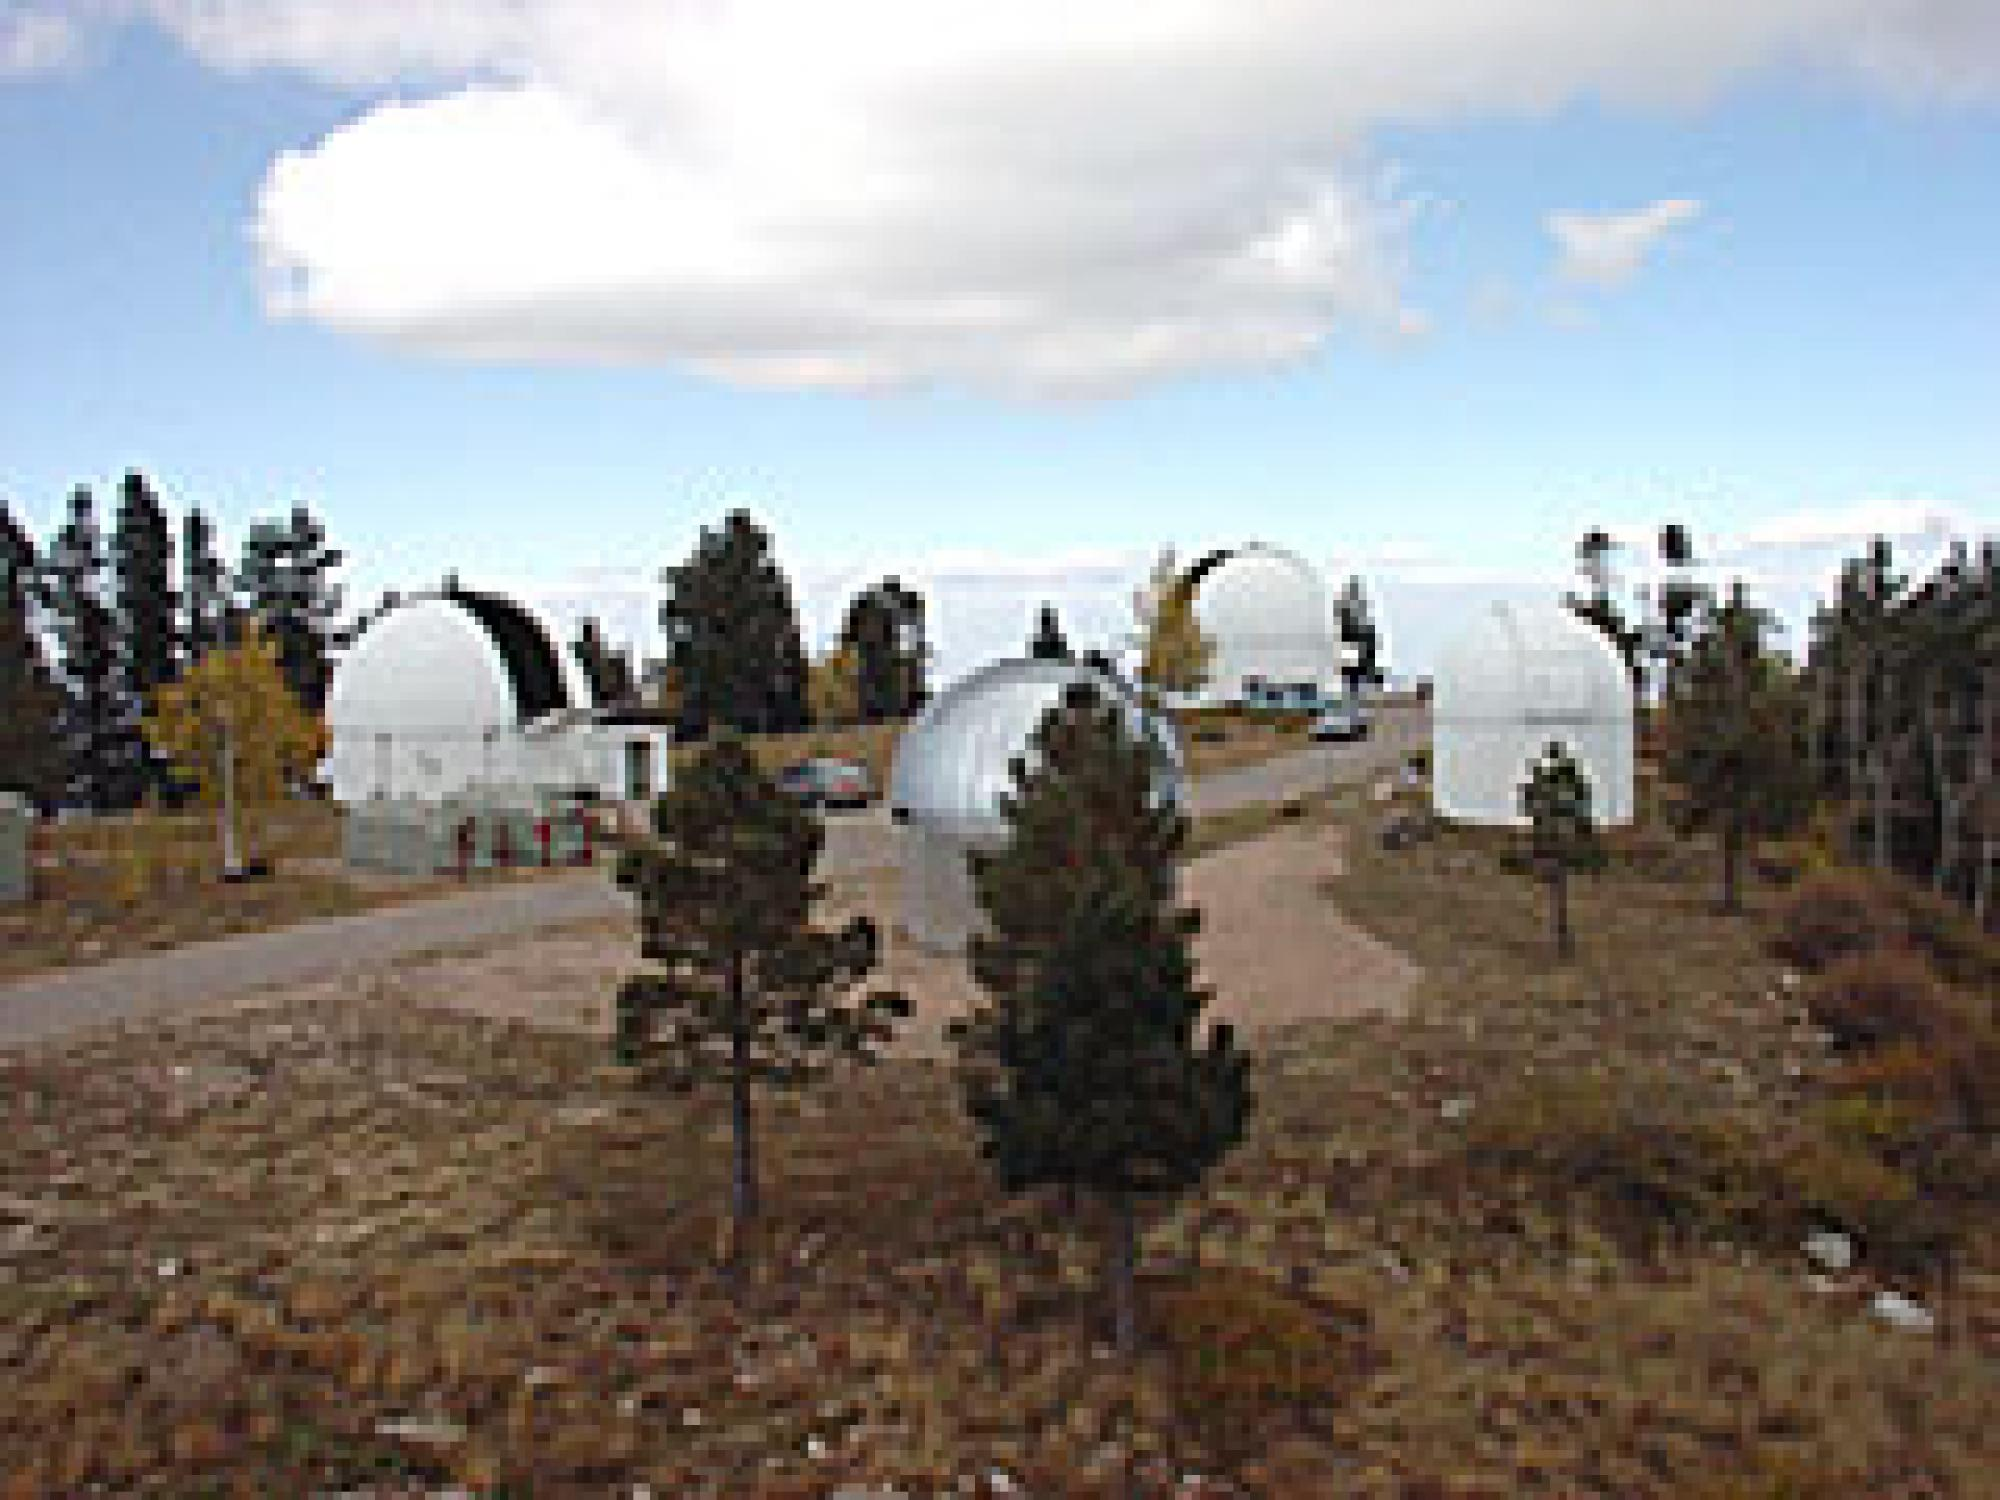 Steward Observatory seeks to make the Mount Lemmon summit a financially self-sustaining, world-class site for public science education.